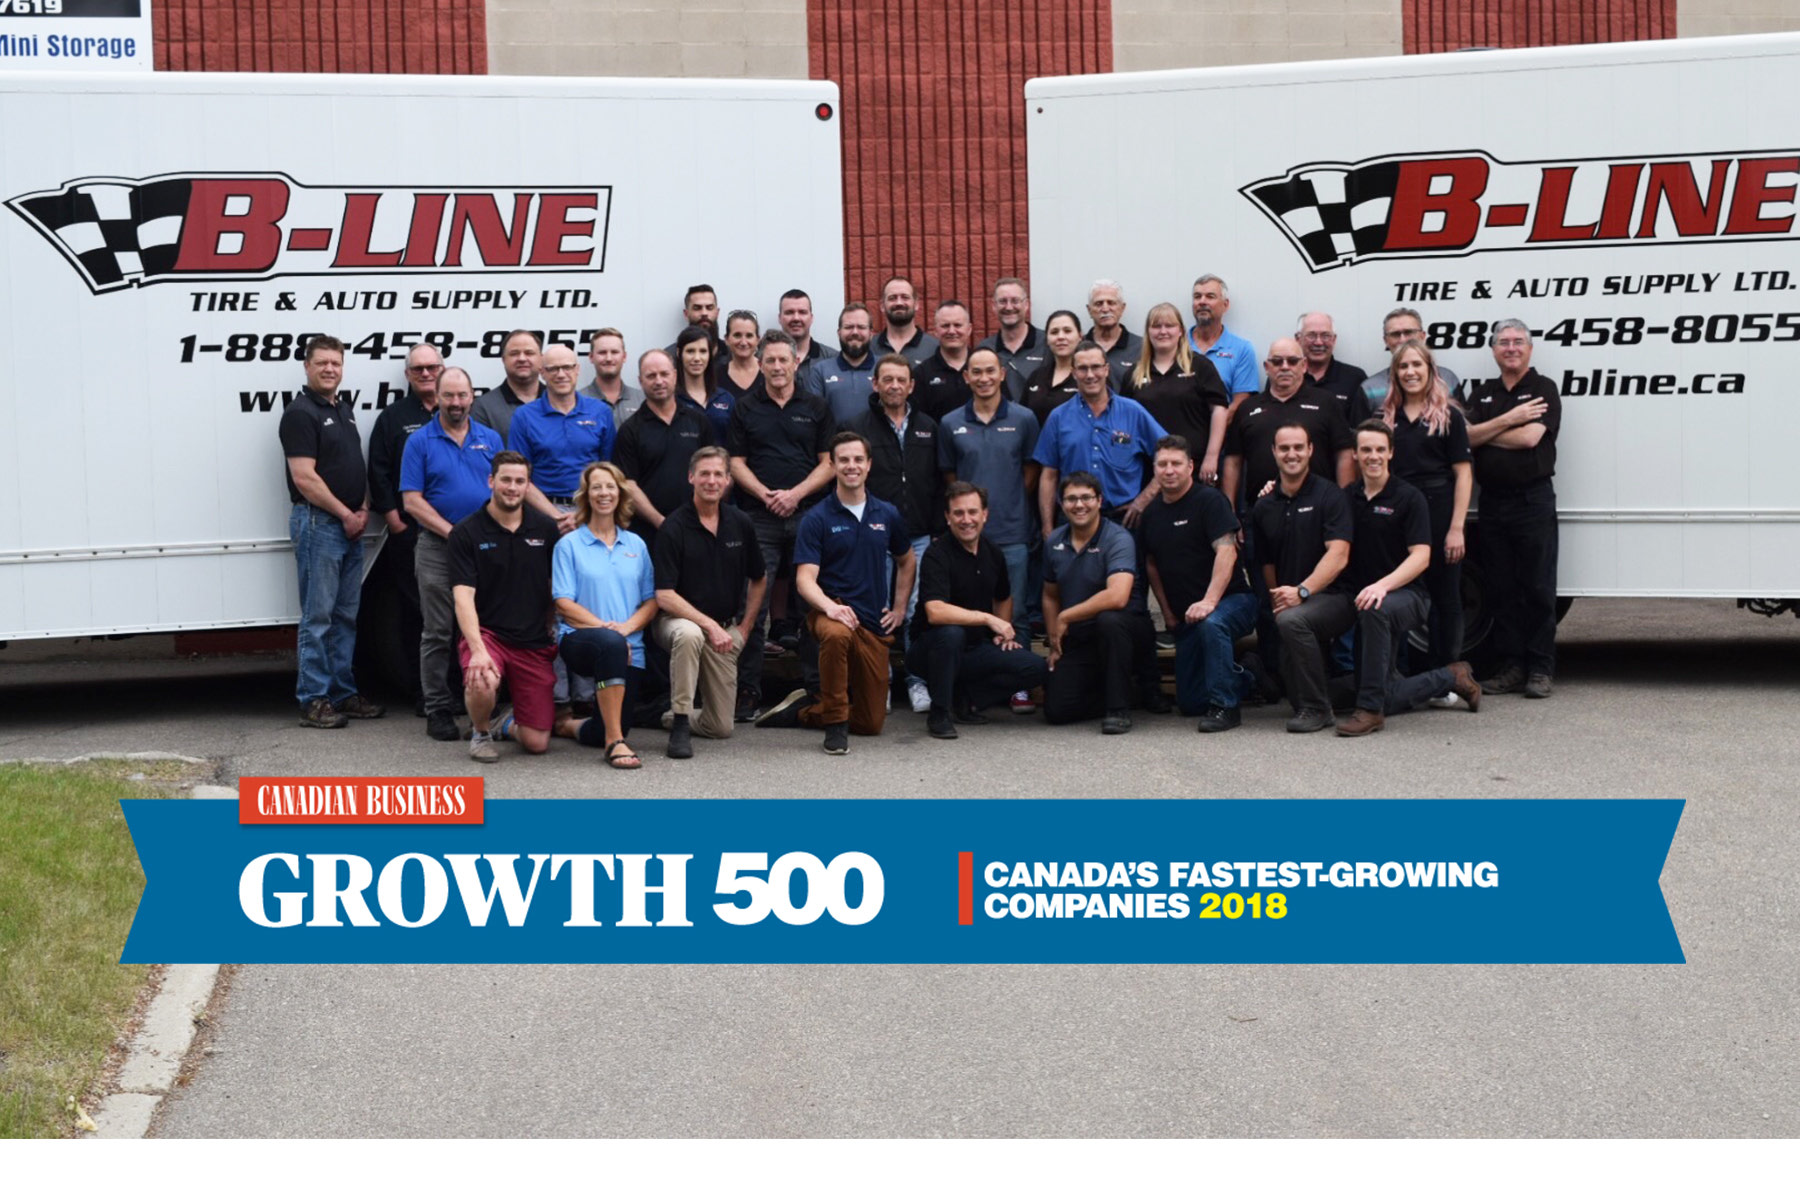 Proud to be one of Canada's Fastest-Growing Companies